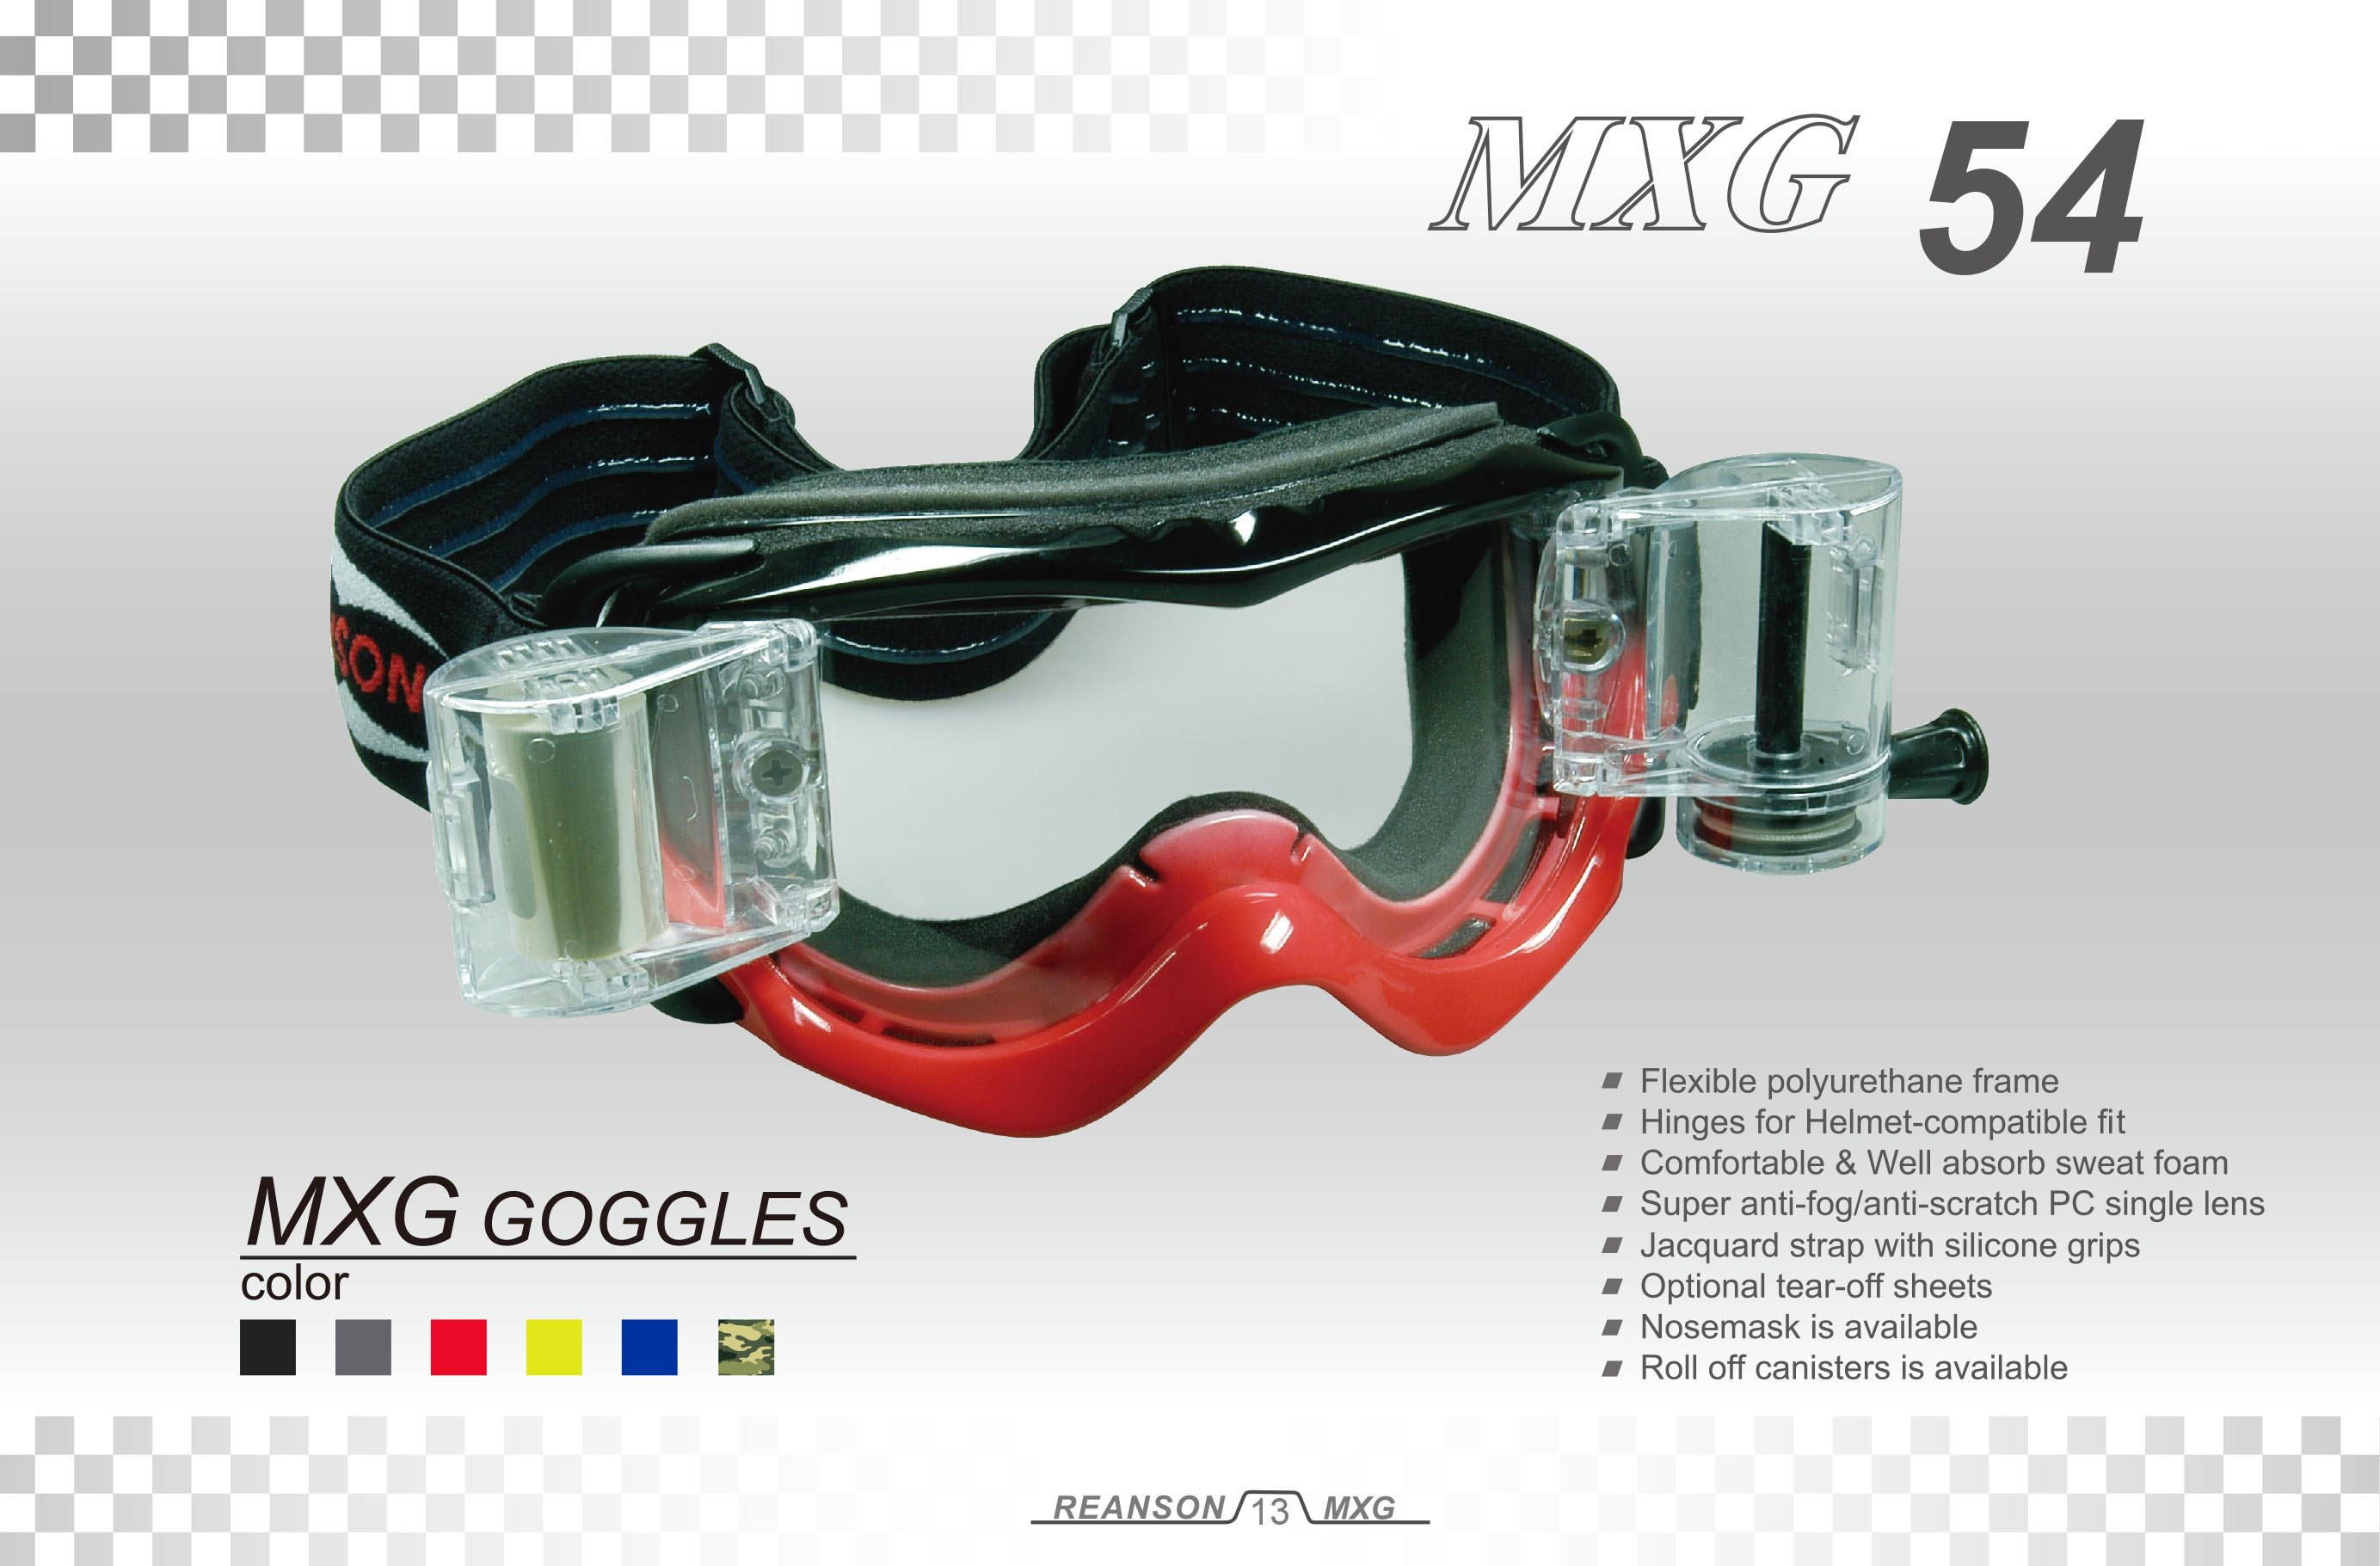 motocross racing goggles on sale-MXG54